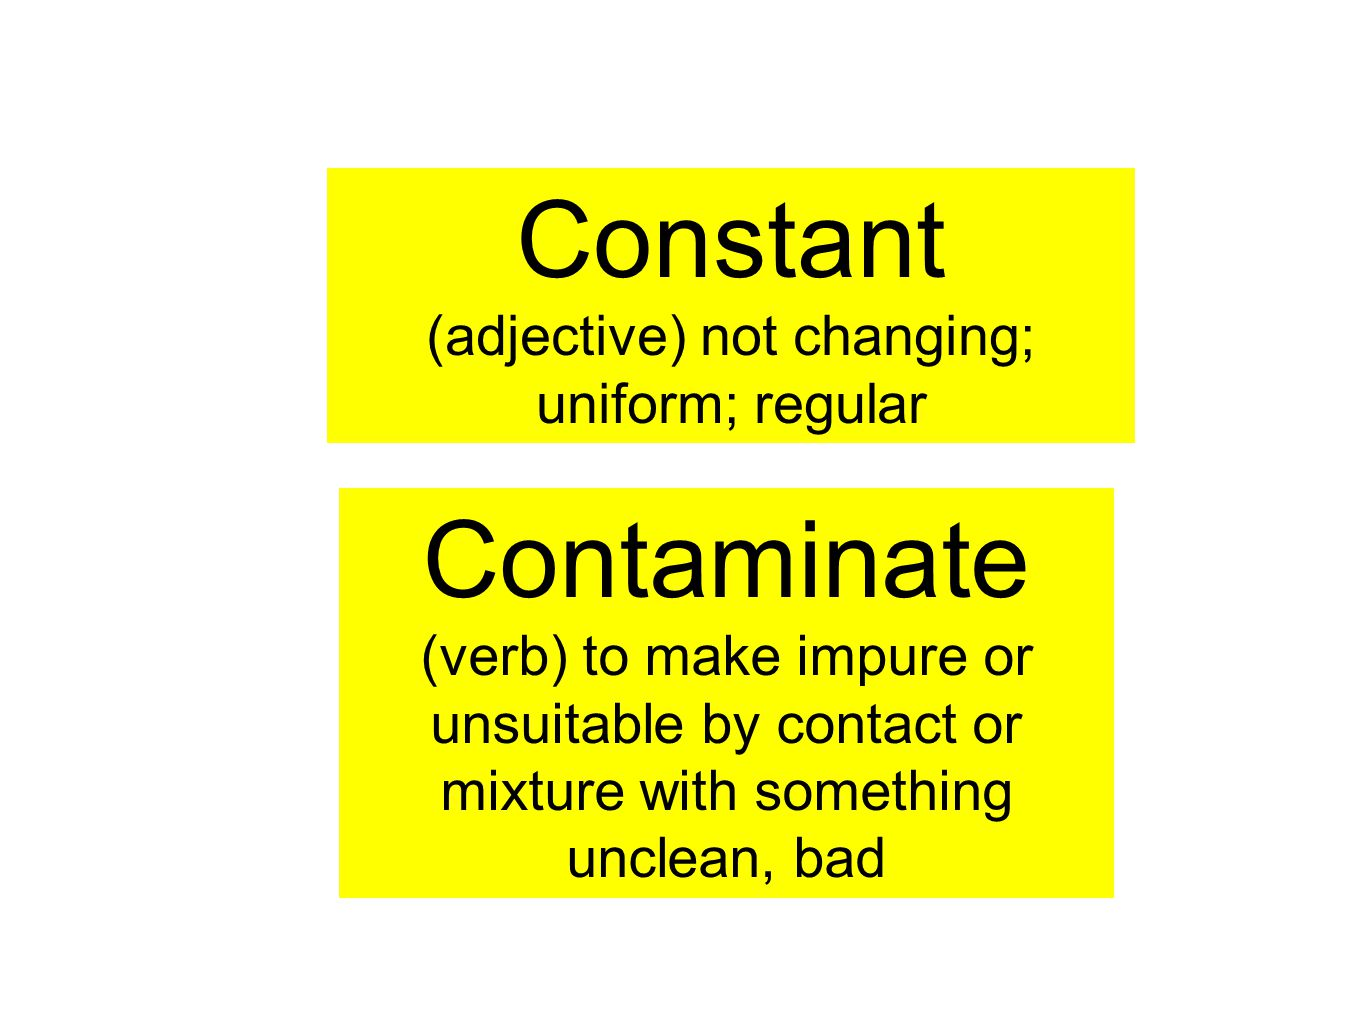 Constant (adjective) not changing; uniform; regular Contaminate (verb) to make impure or unsuitable by contact or mixture with something unclean, bad